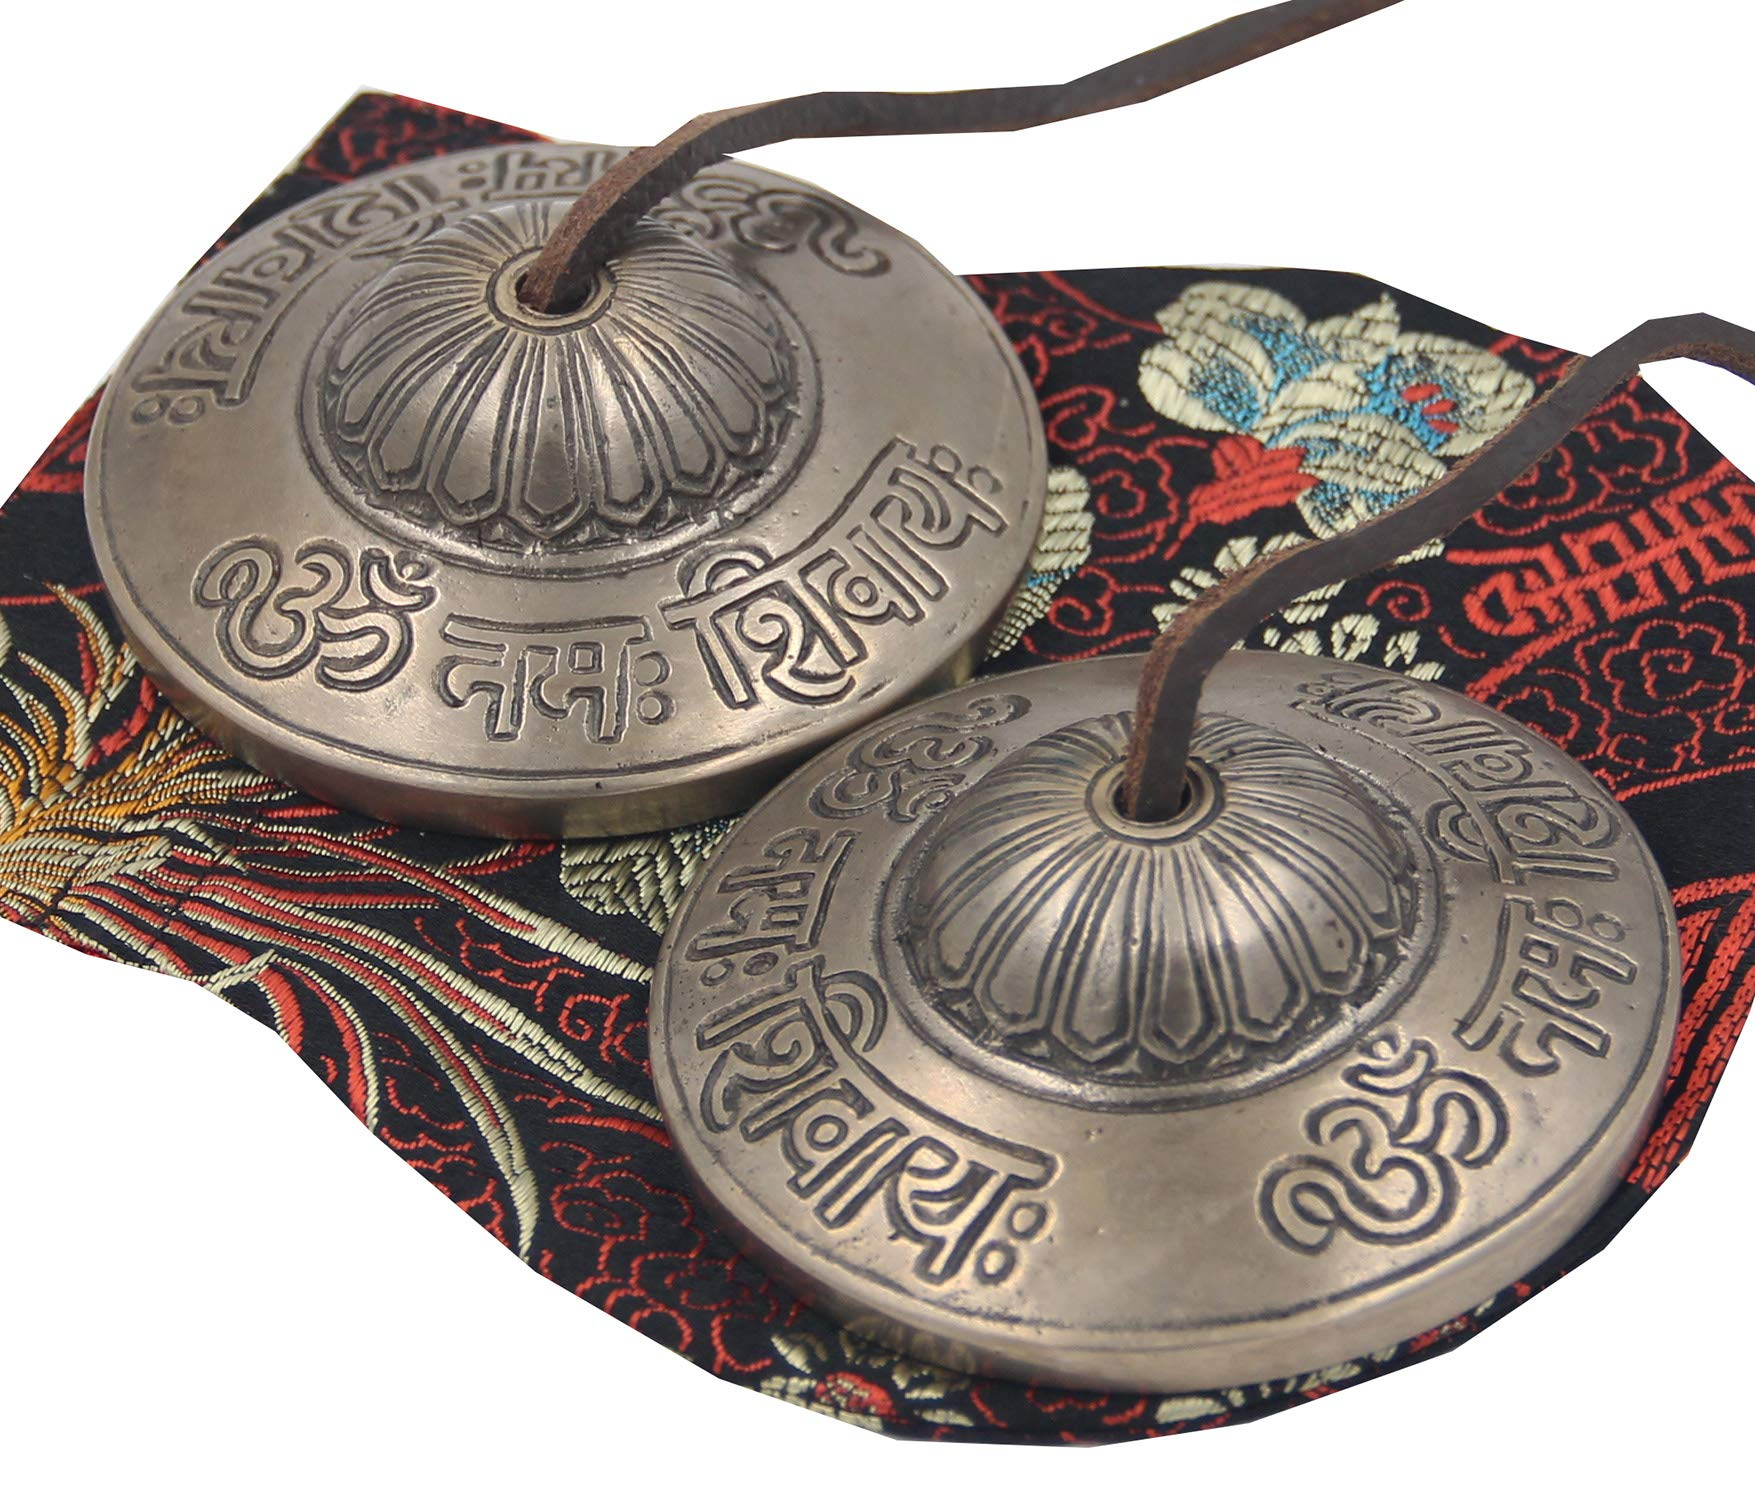 Tibetan Premium Quality ''Om Nama Shivaya'' Tingsha Cymbals 2.5'' With Pouch by Lungta Imports